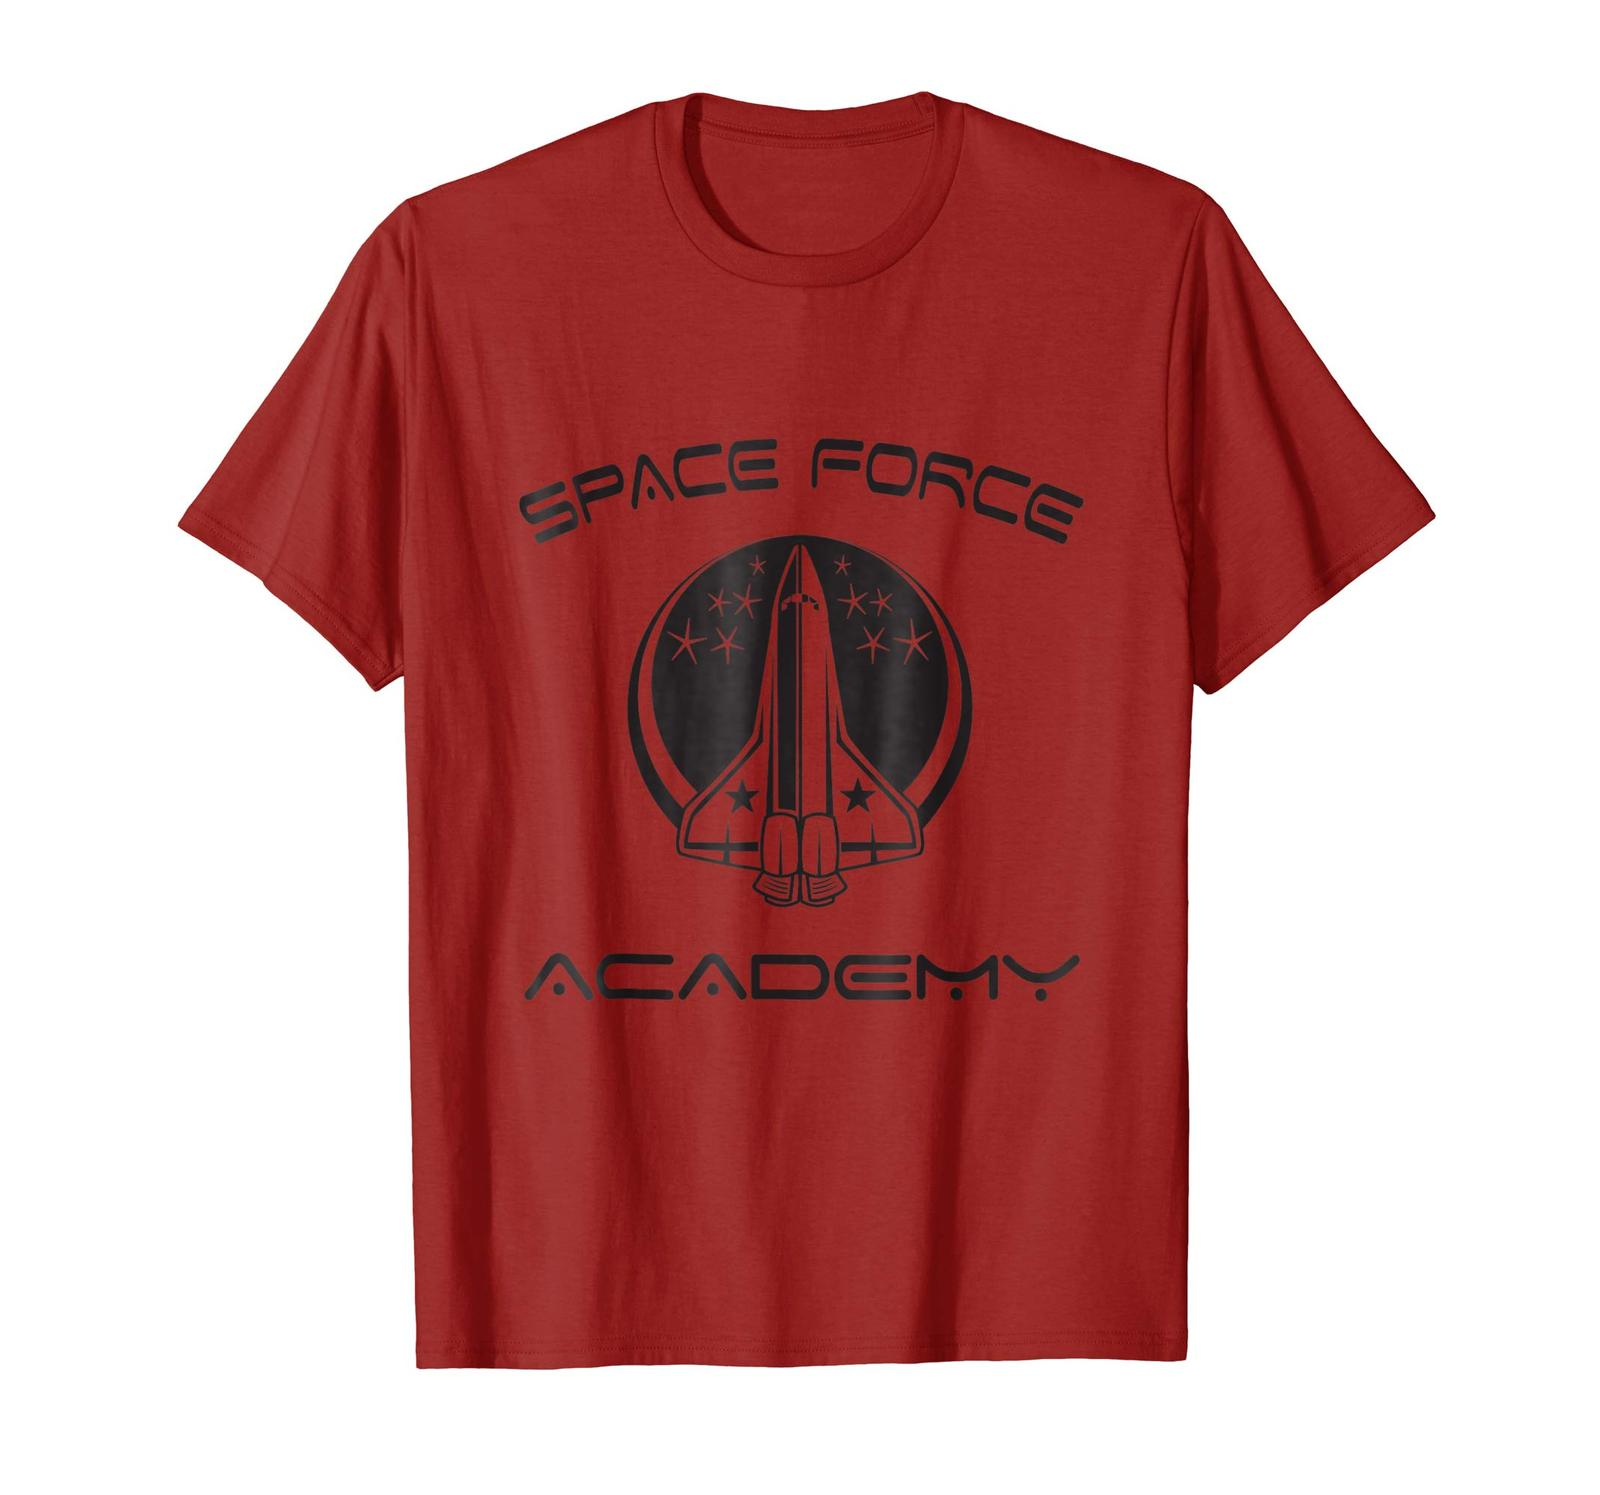 Funny Happy birthday T-Shirt - SPACE FORCE T-SHIRT Great Science Academy Gift Id